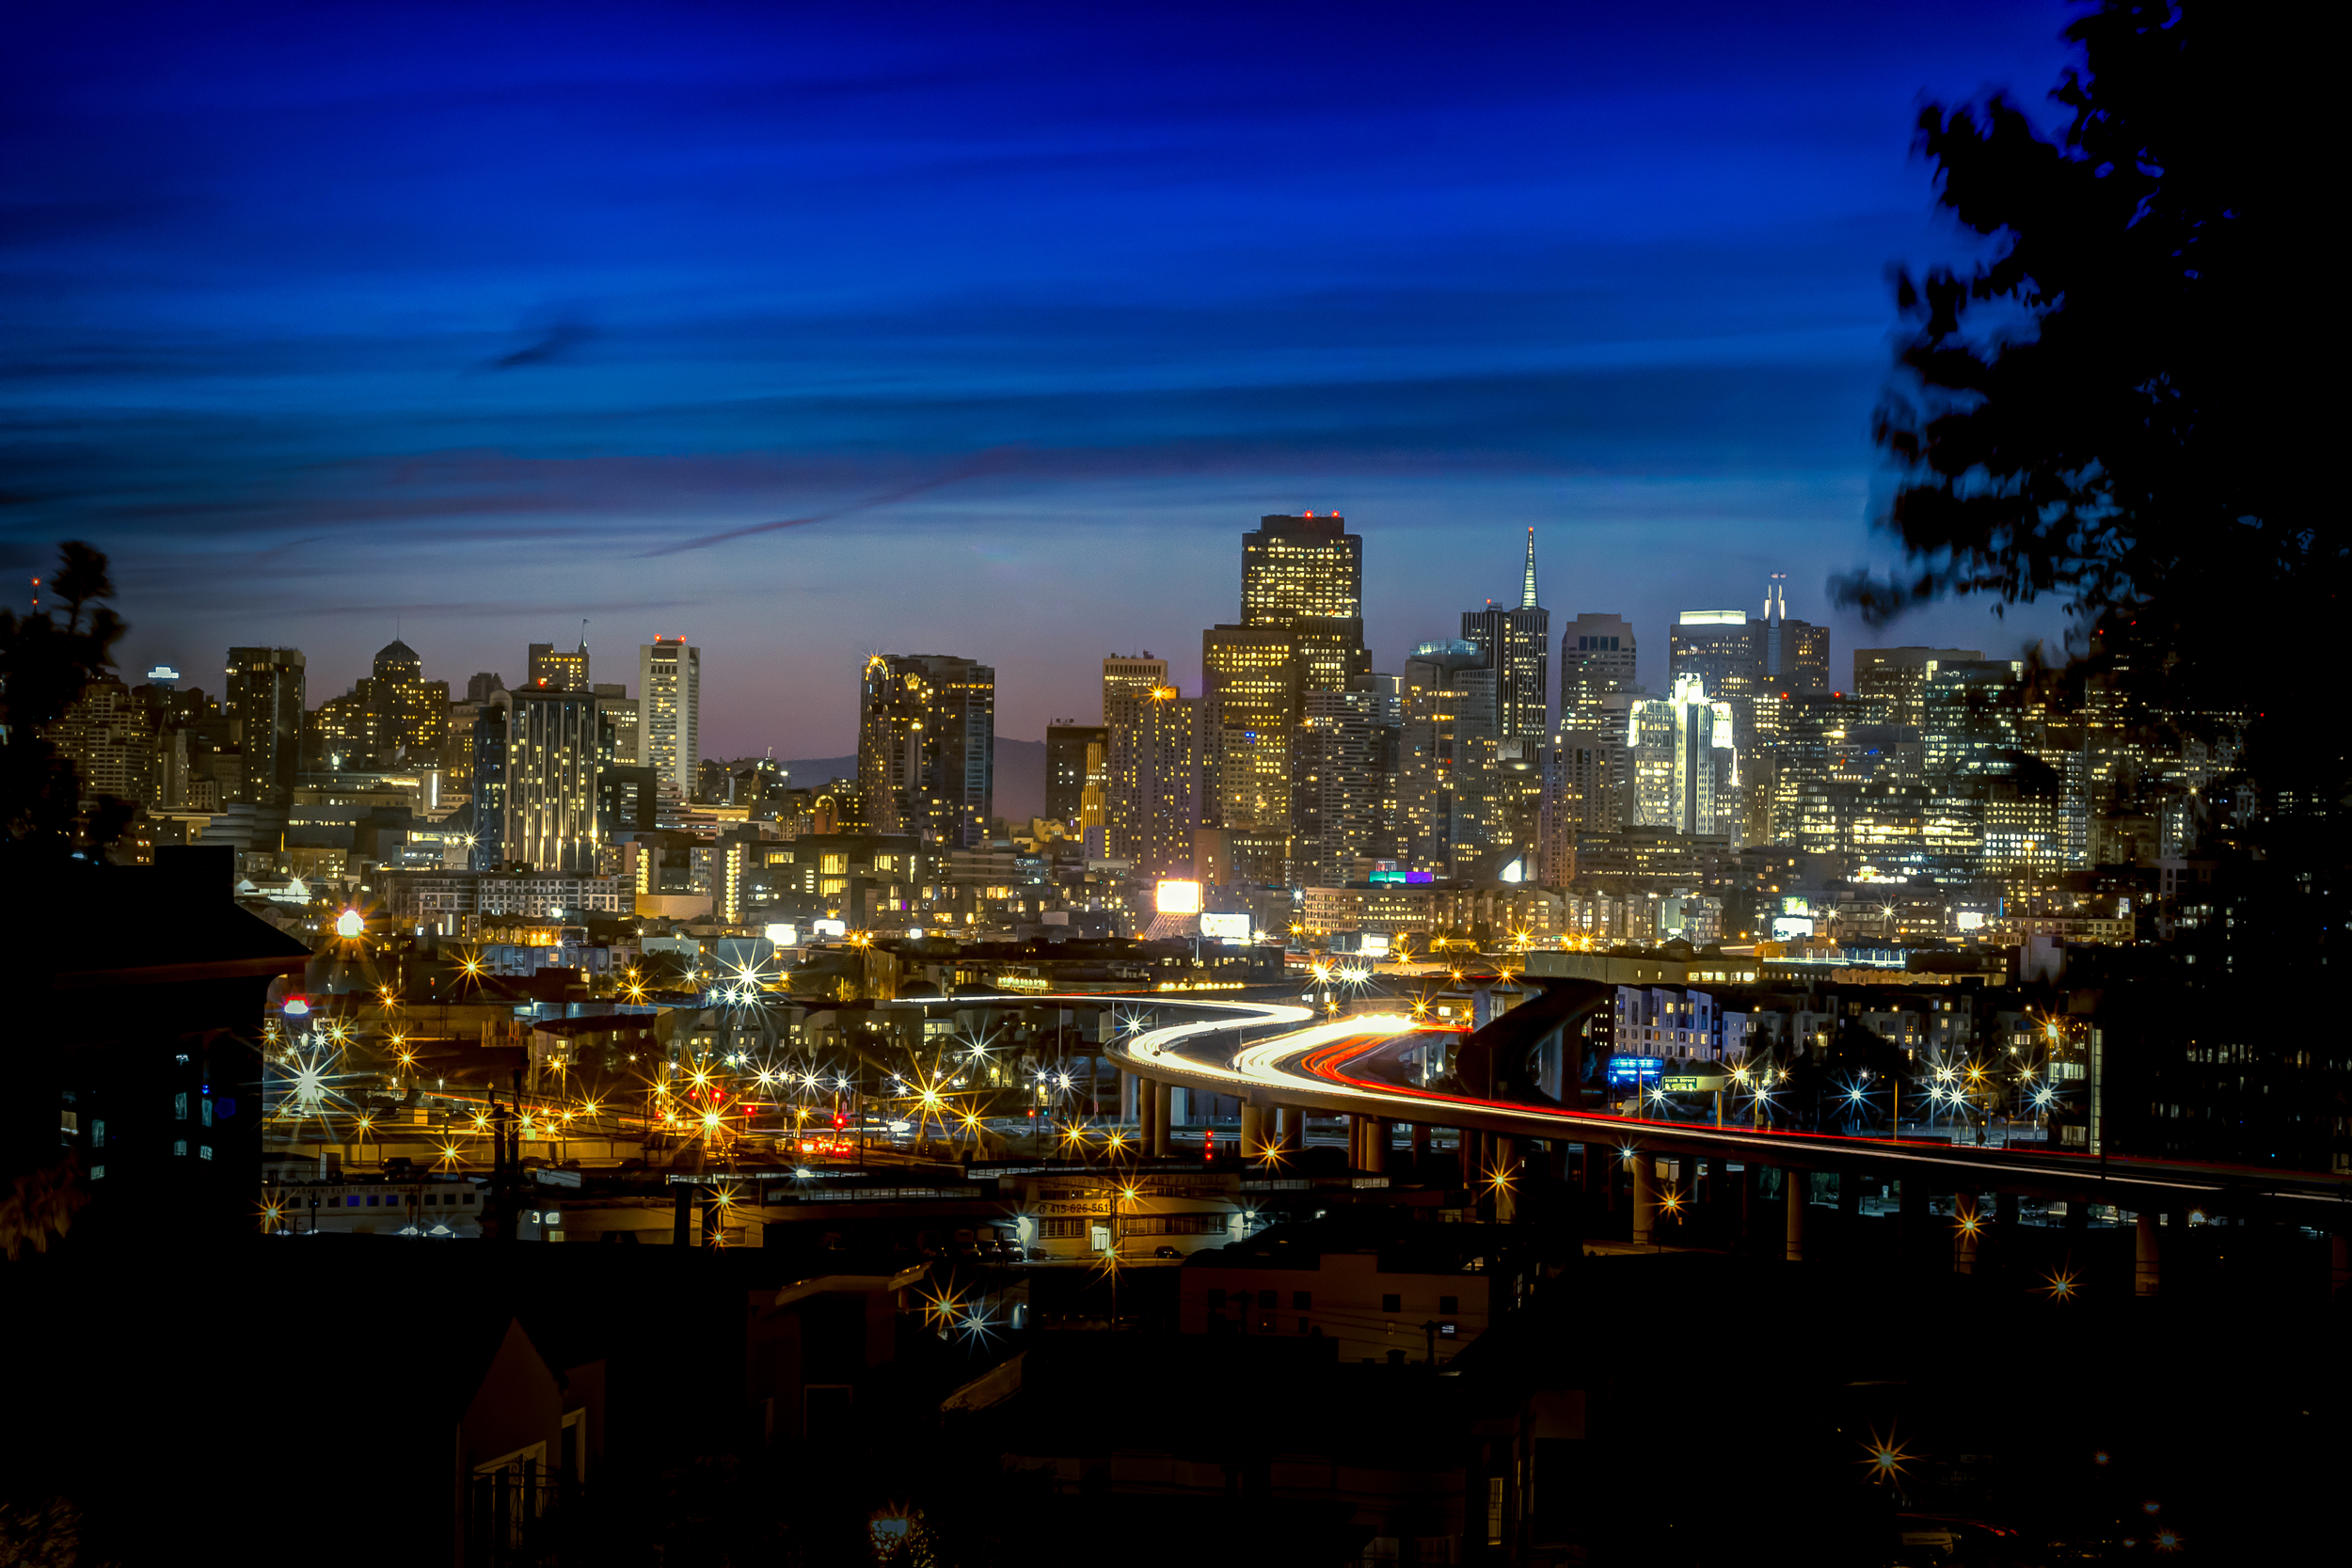 Potrero Hills Photo Spot - San Francisco - Eric Bravo Photography